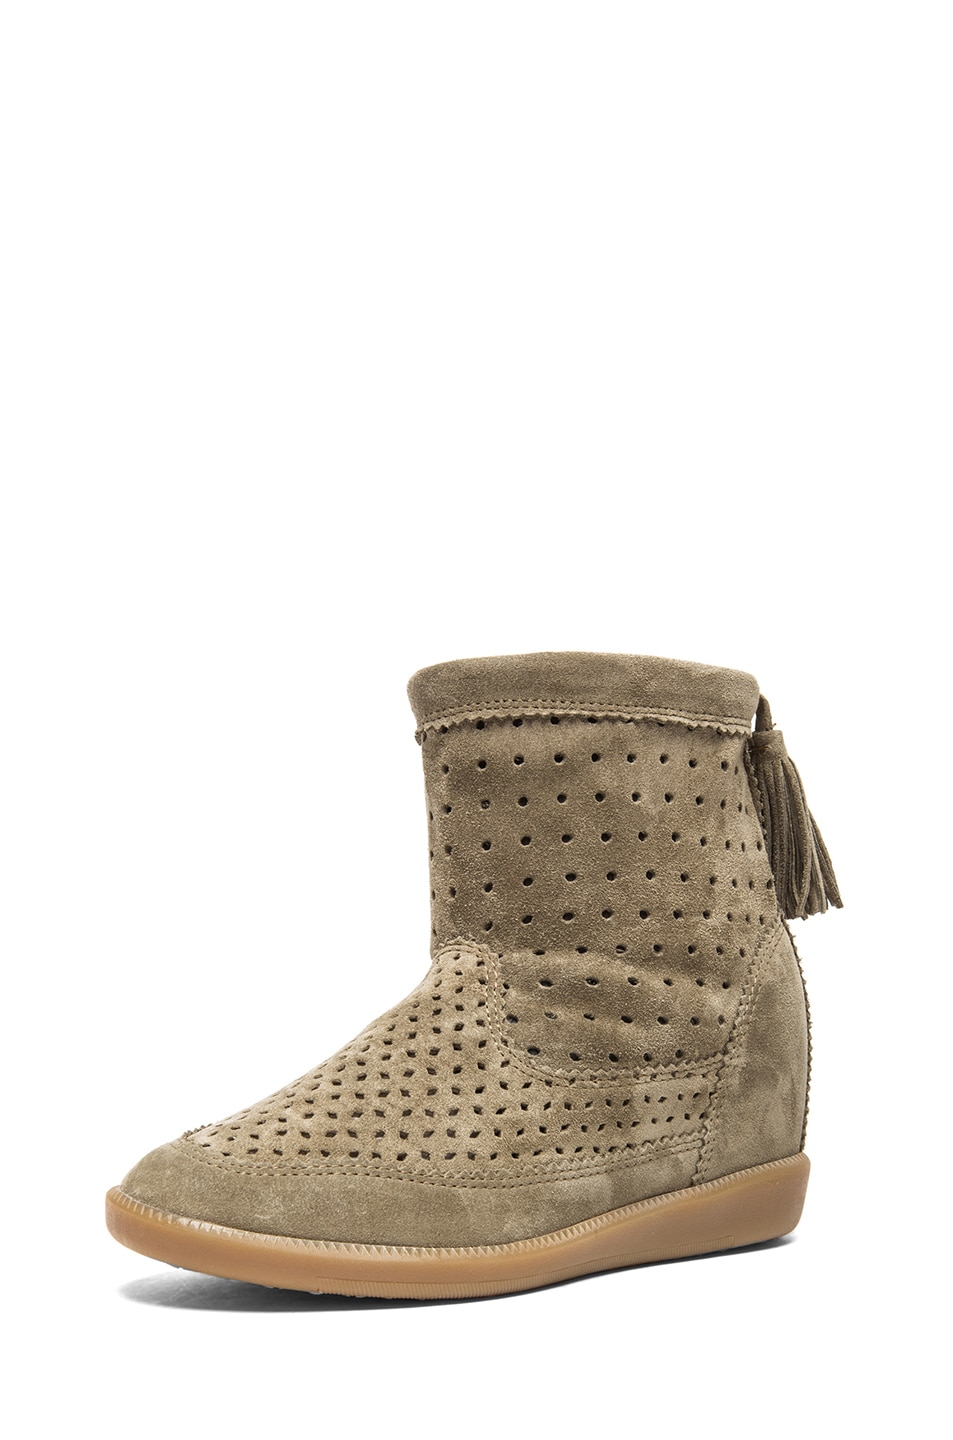 Image 2 of Isabel Marant Beslay Calfskin Velvet Leather Boots in Taupe